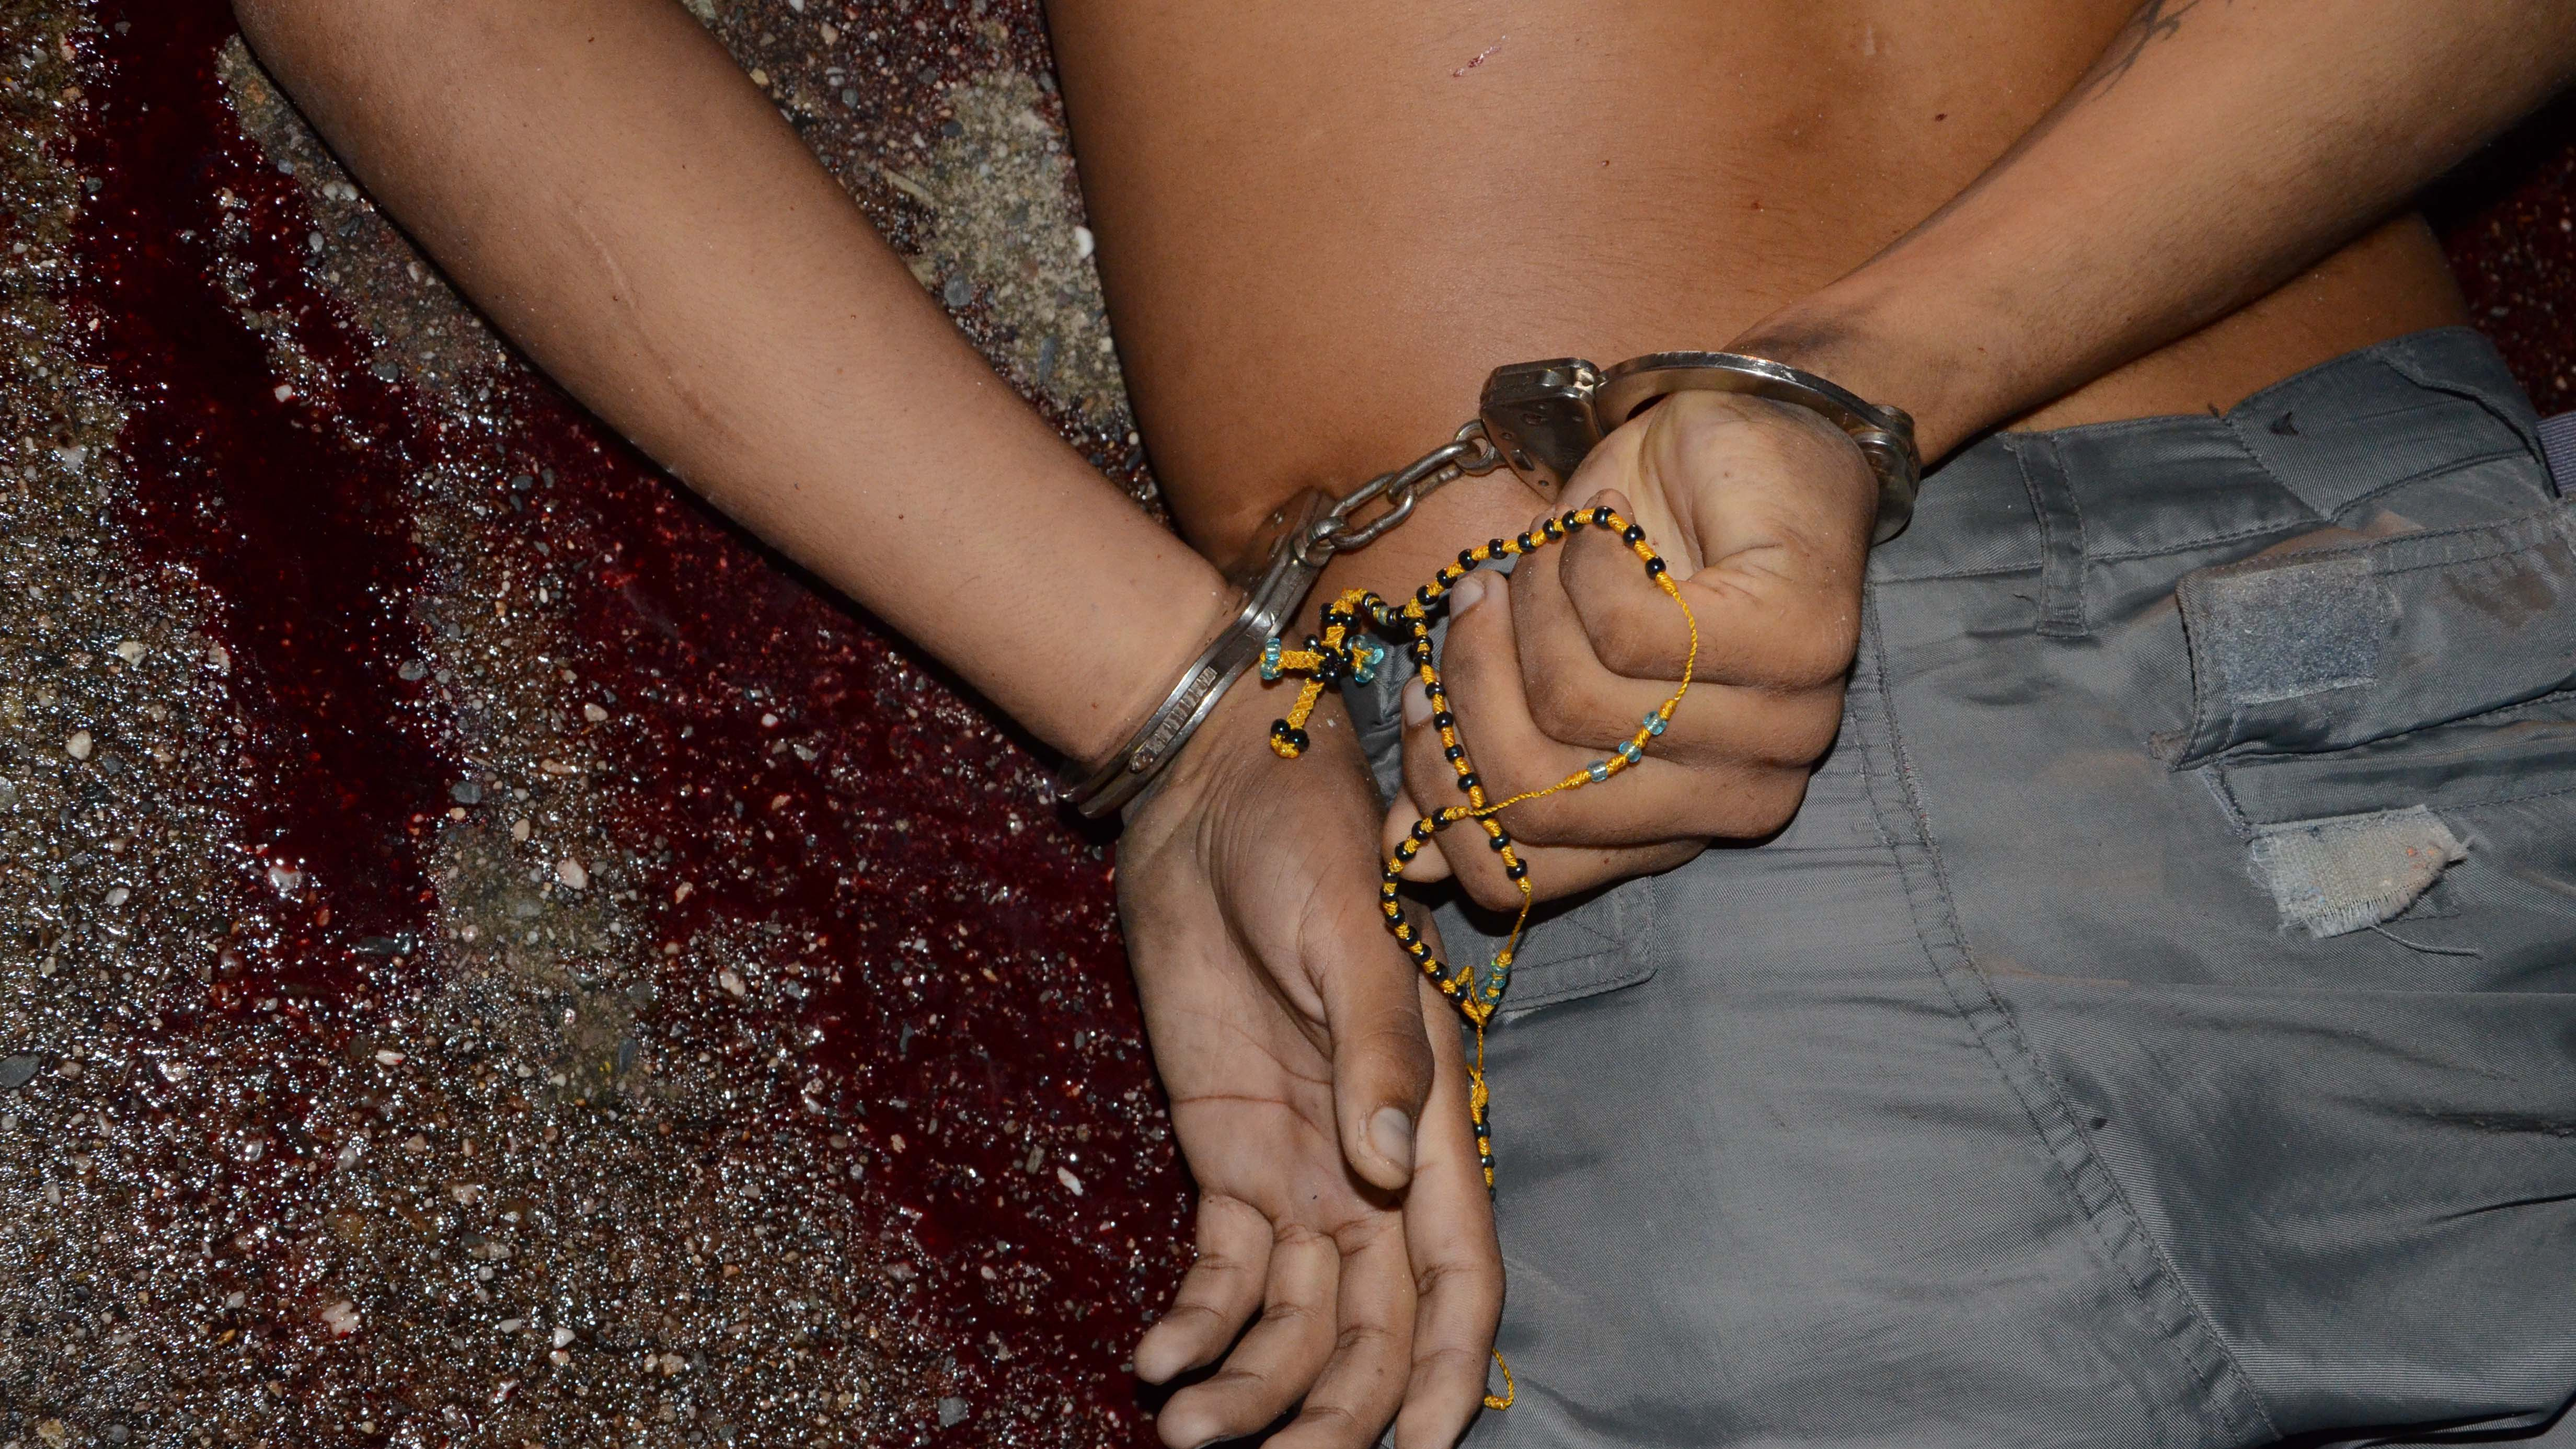 A man lies face down, handcuffed behind his back and holding a rosary after he was shot multiple times in Acapulco, Mexico